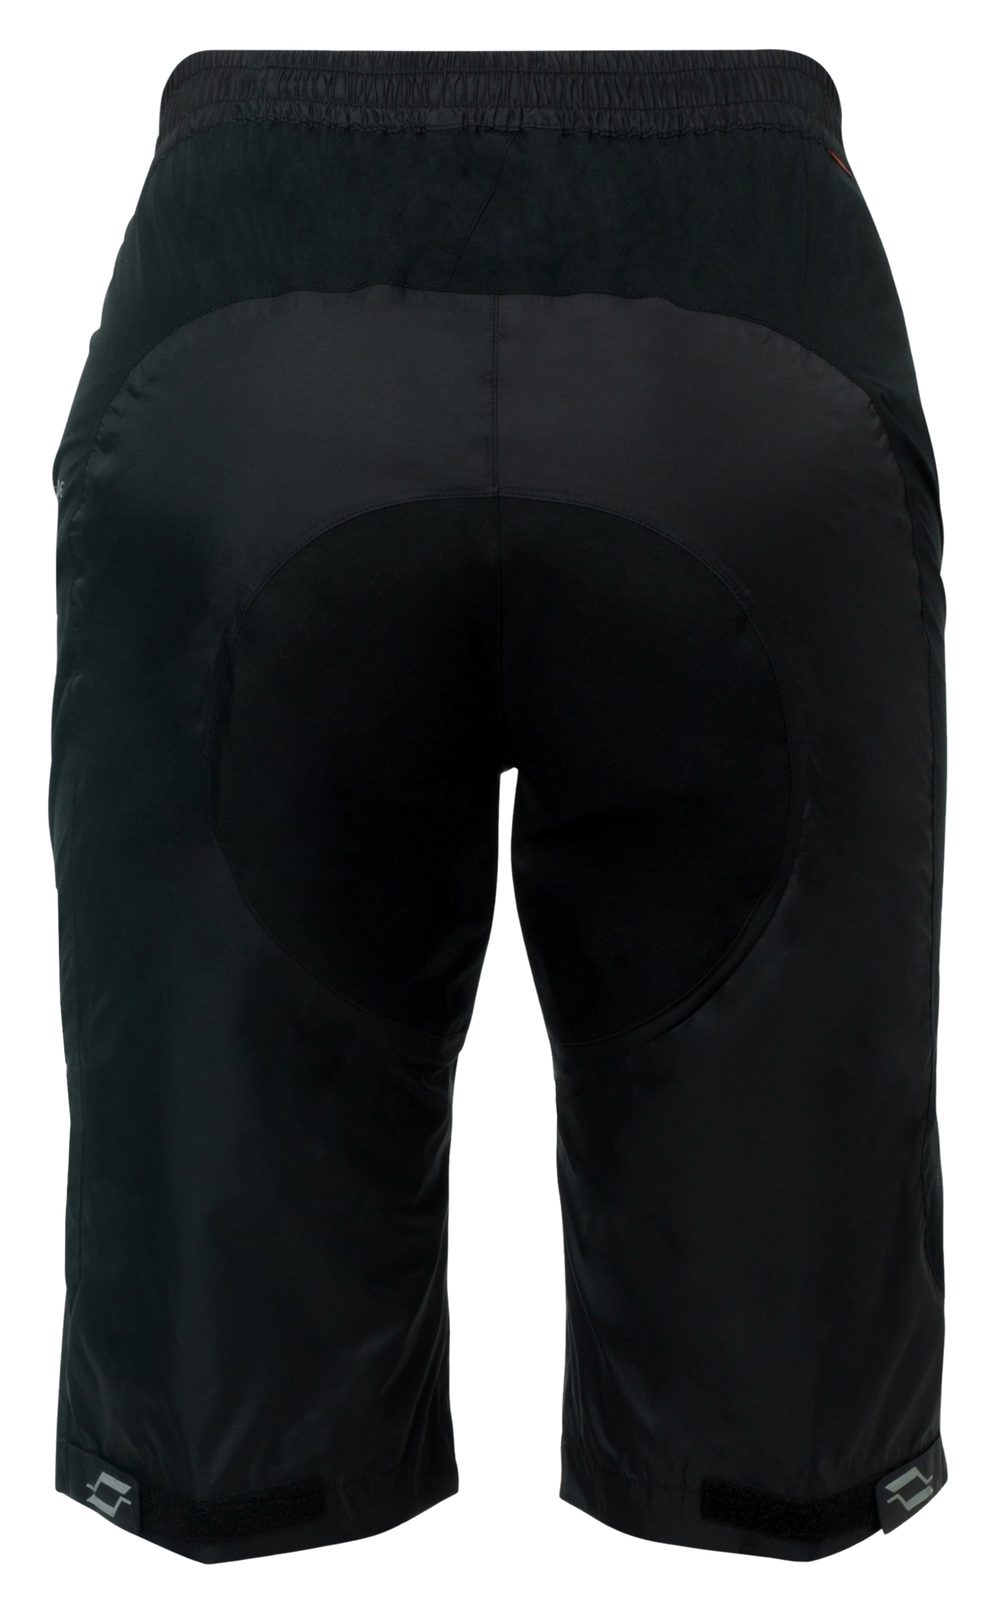 VAUDE Women´s Spray Shorts II black Größe 42 - schneider-sports